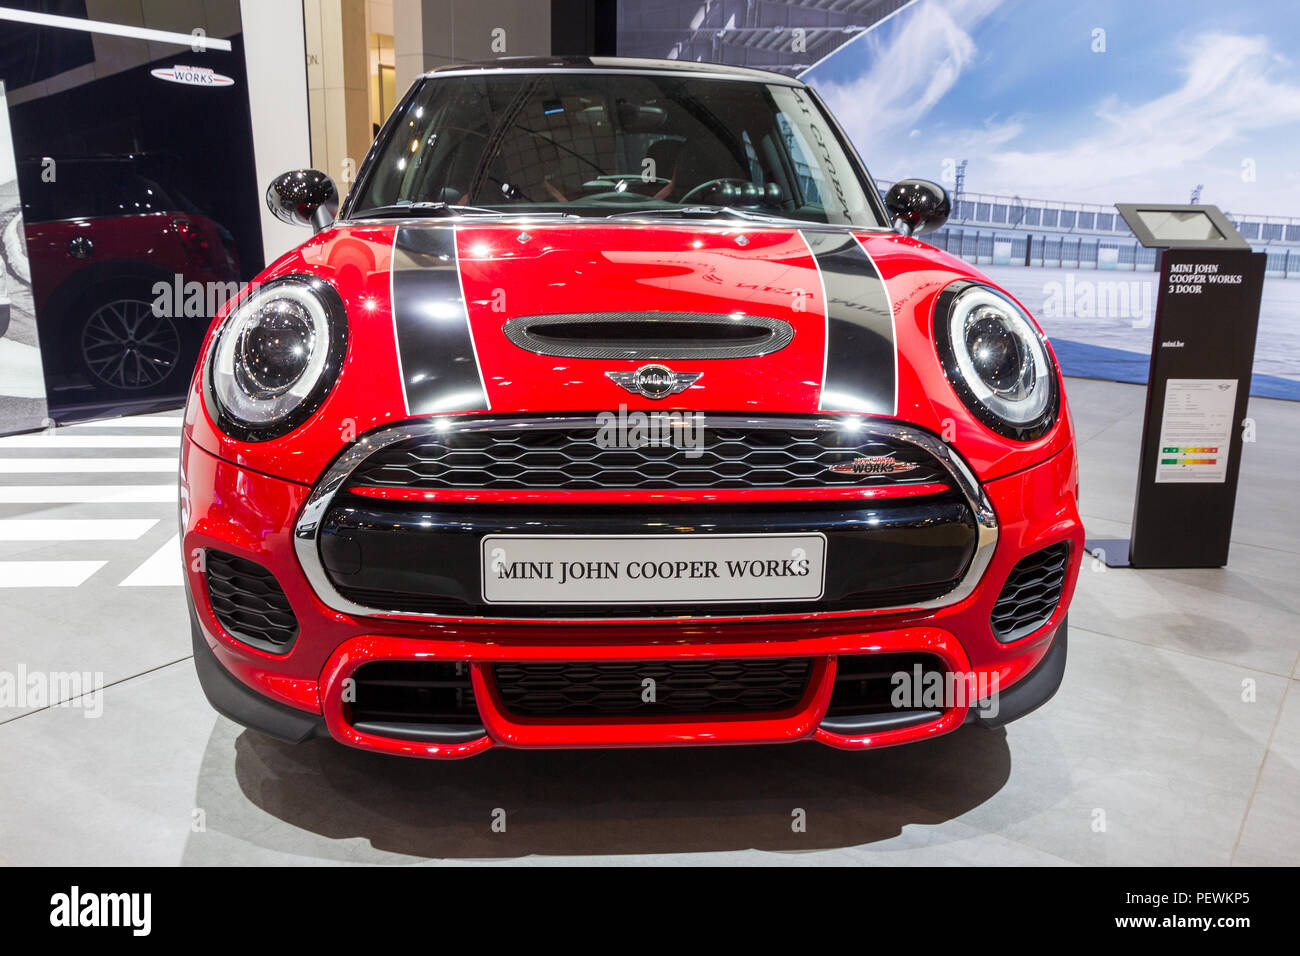 BRUSSELS - JAN 12, 2016: Mini Cooper car showcased at the Brussels Motor Show. - Stock Image